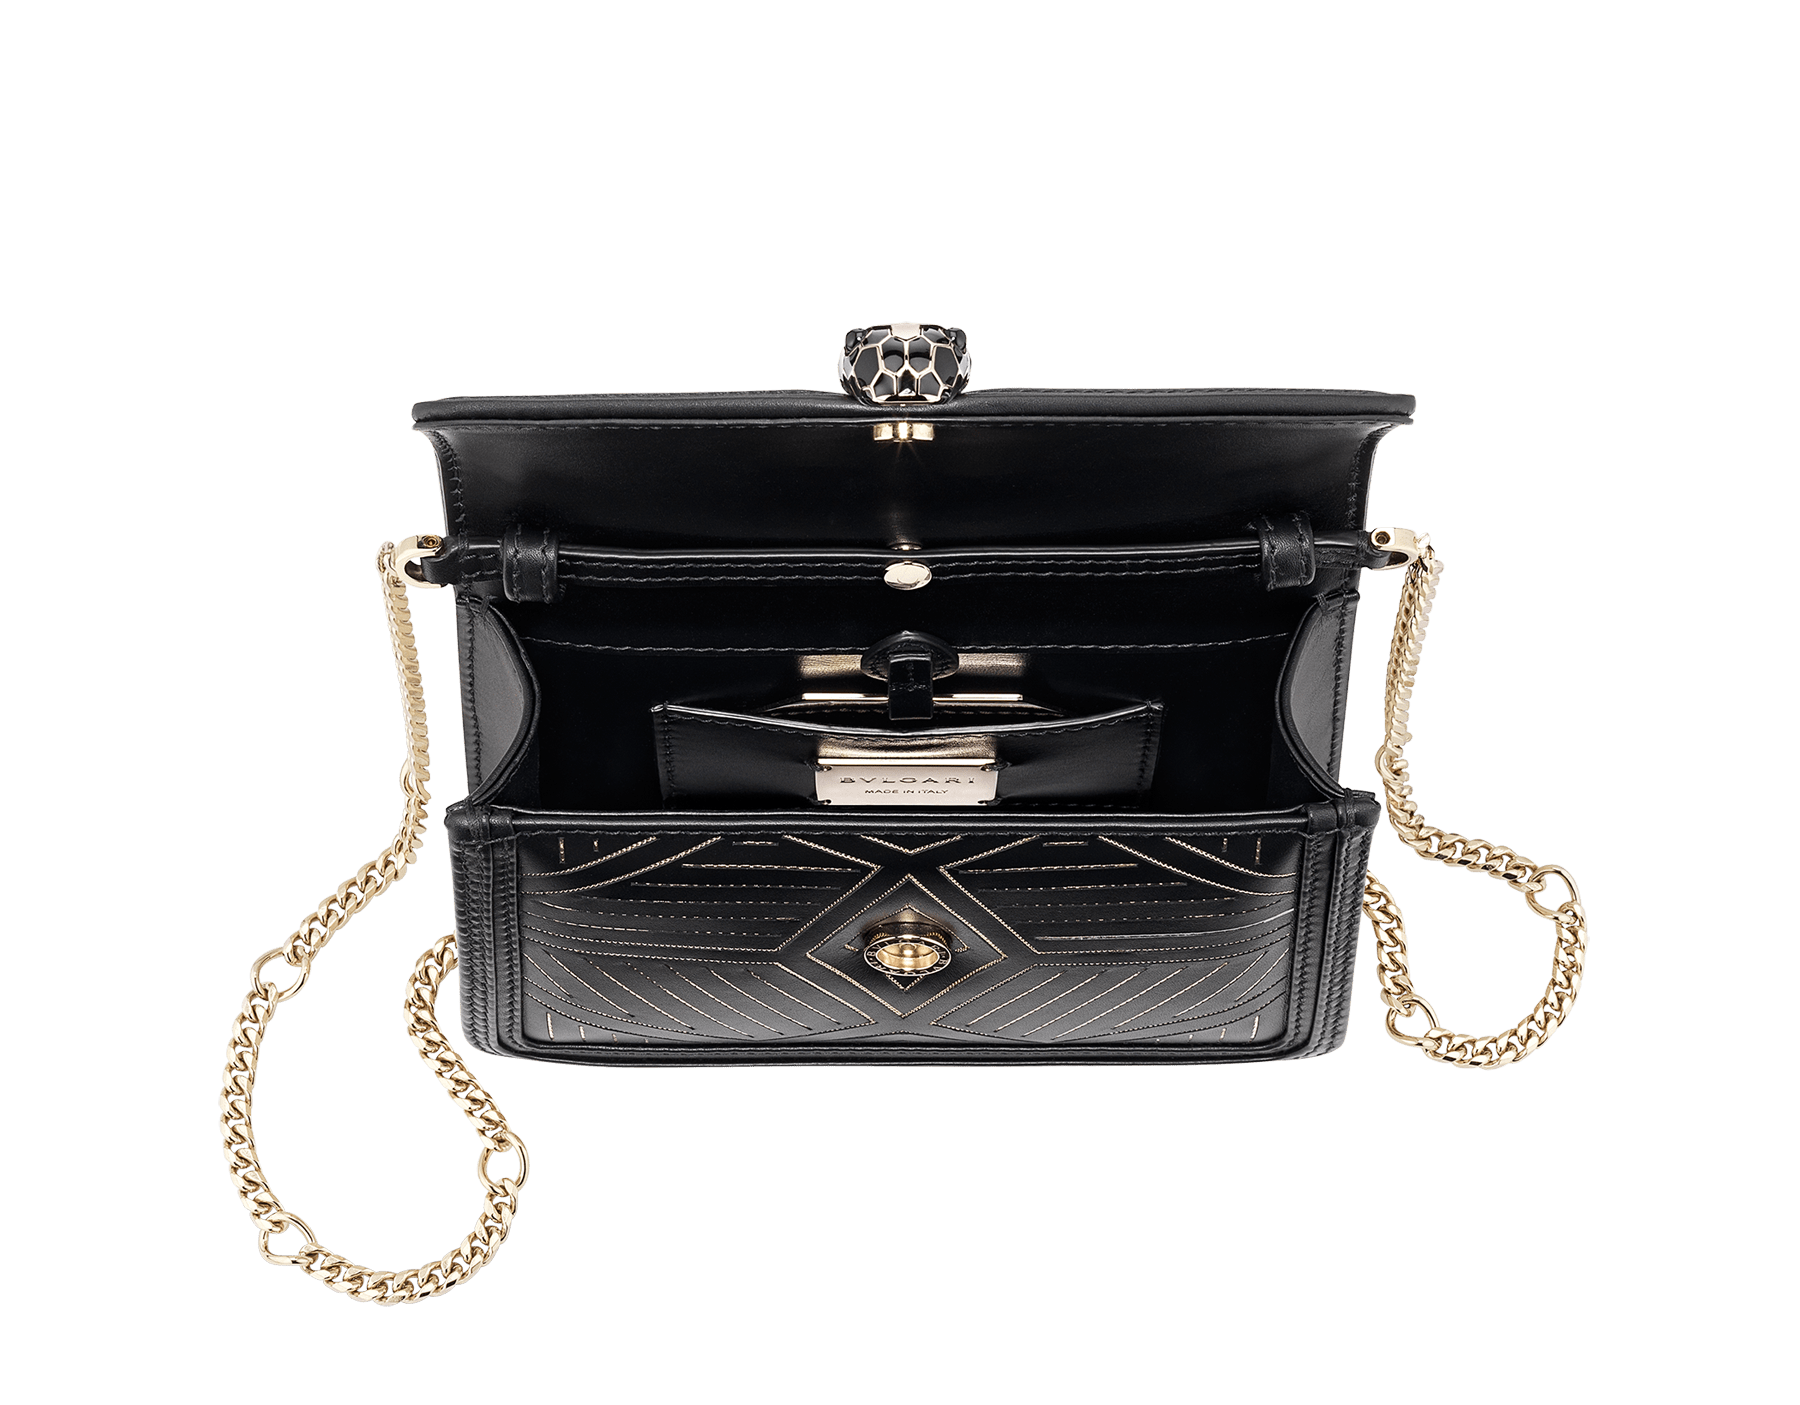 """Serpenti Diamond Blast"" shoulder bag in white agate calf leather, featuring a Whispy Chain motif in light gold finishing. Iconic snakehead closure in light gold-plated brass enriched with black and white agate enamel and black onyx eyes. 987-WC image 4"